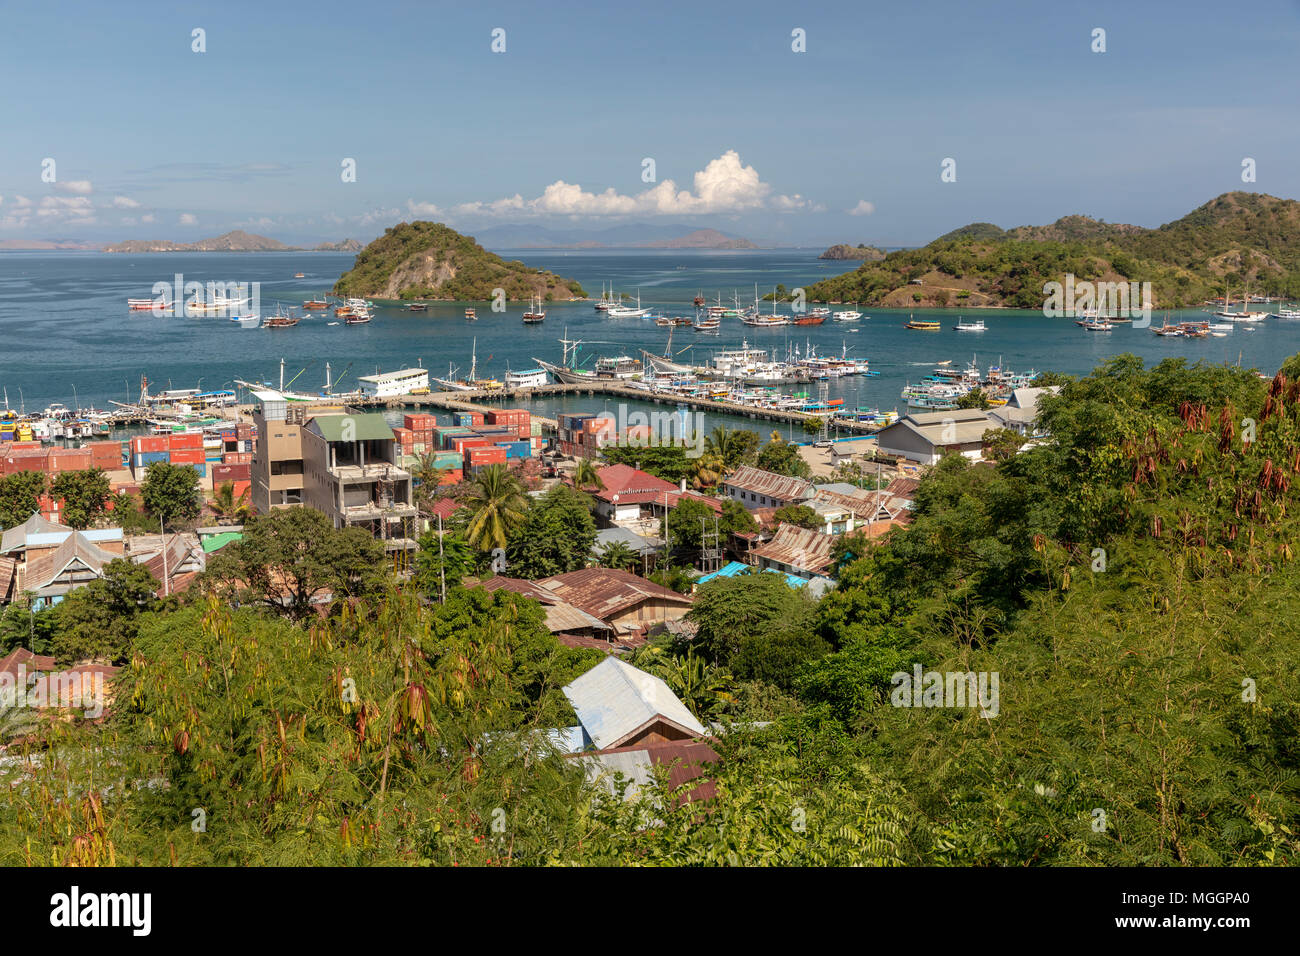 View of harbor at  Labuan Bajo, Indonesia from hillside above town - Stock Image